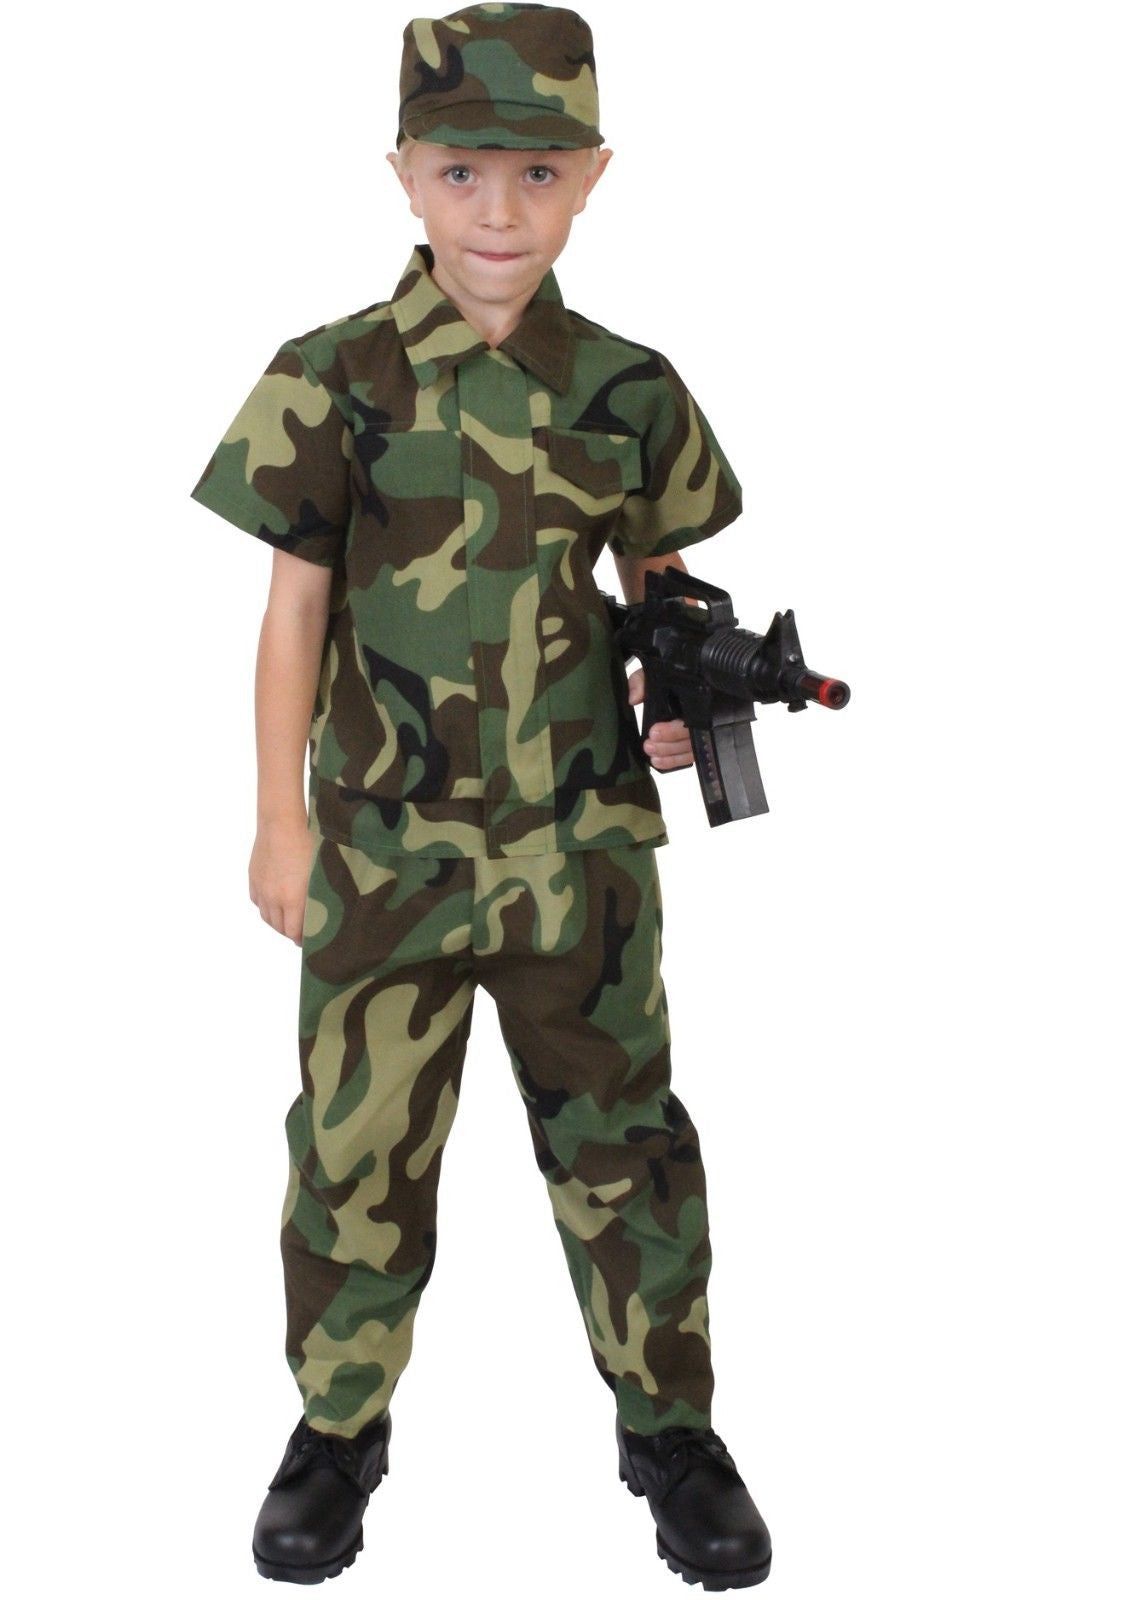 1e2c1ff7968 Kids Soldier Costume - Child Camouflage Uniform - Halloween Dress Up, Play  Time